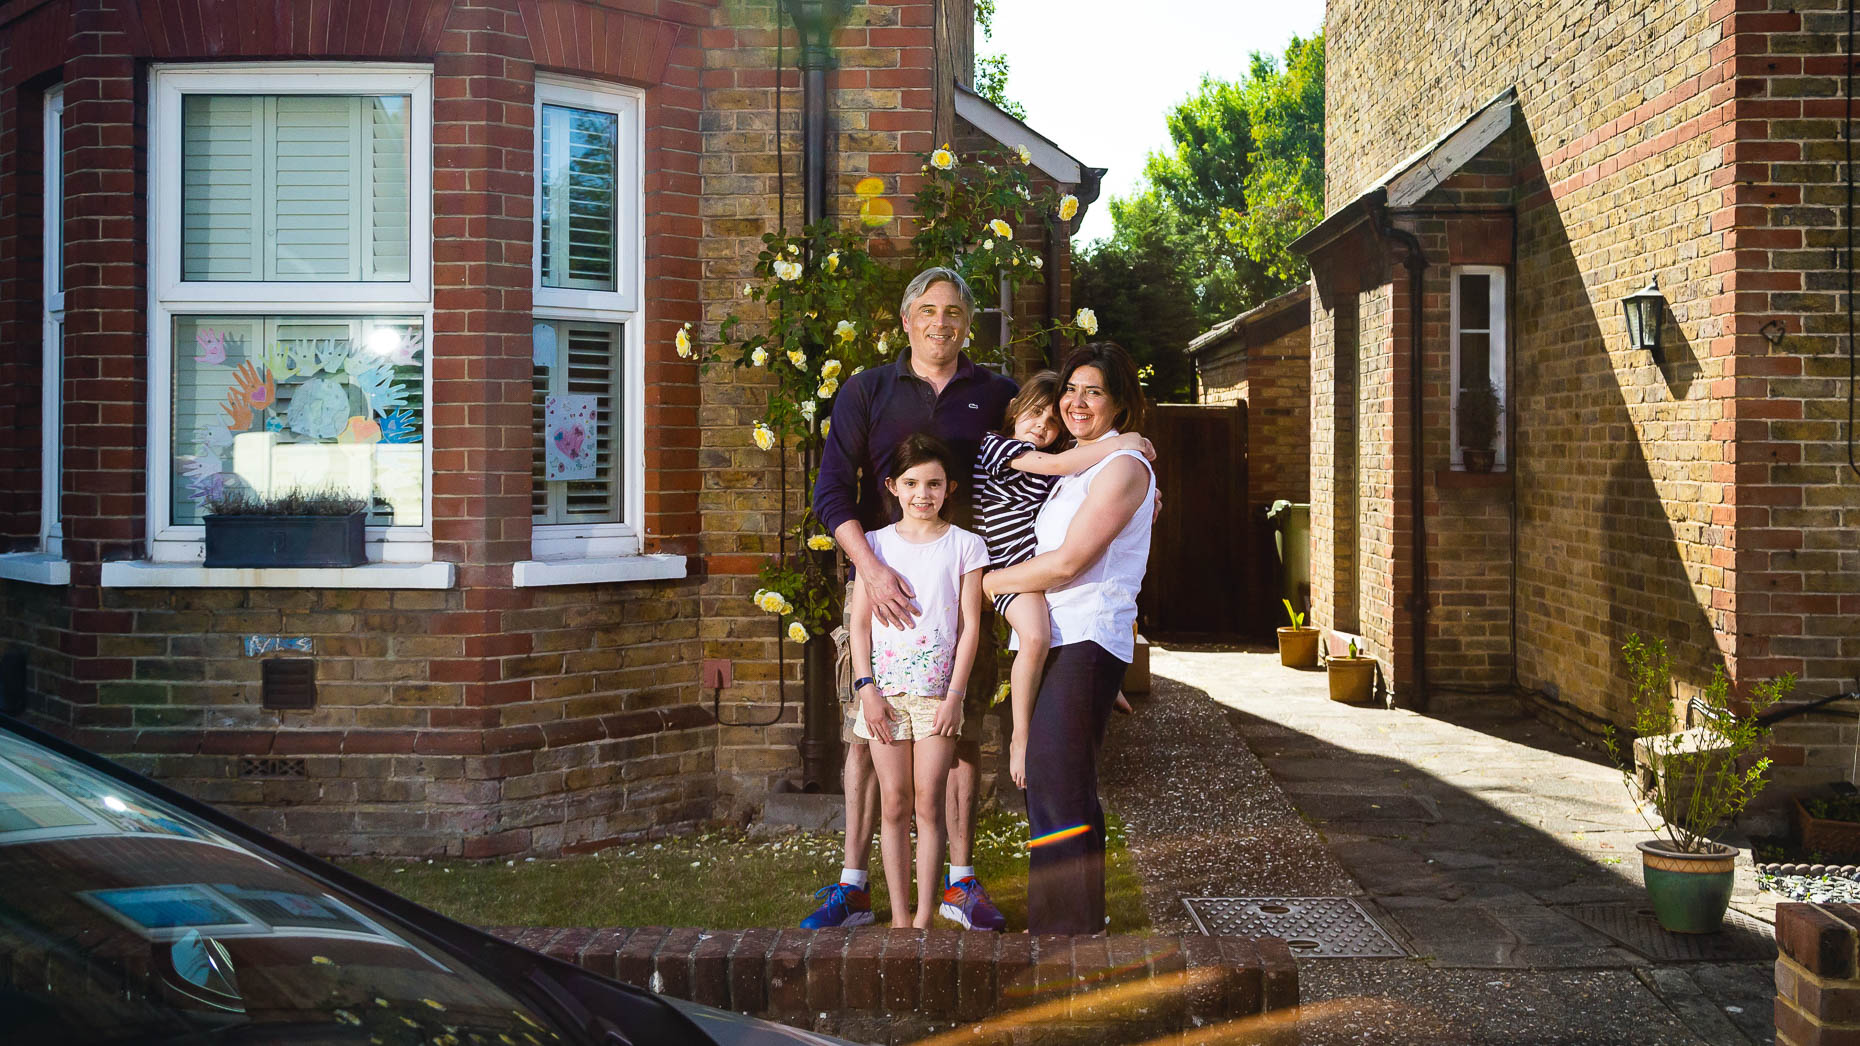 Ashtead Doorstep Portraits 37